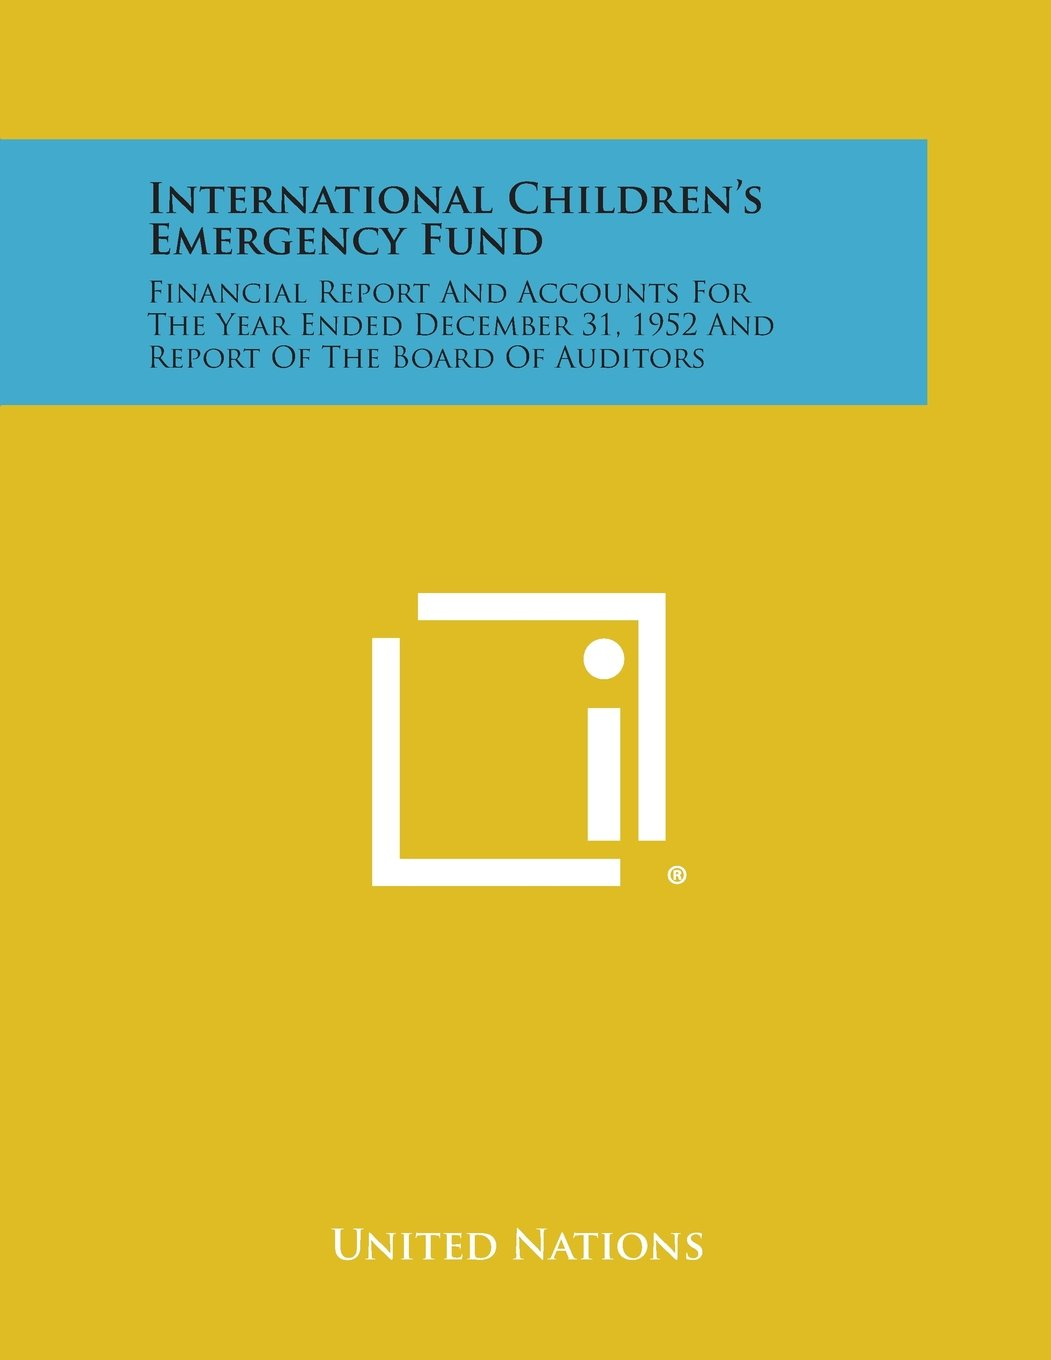 Download International Children's Emergency Fund: Financial Report and Accounts for the Year Ended December 31, 1952 and Report of the Board of Auditors pdf